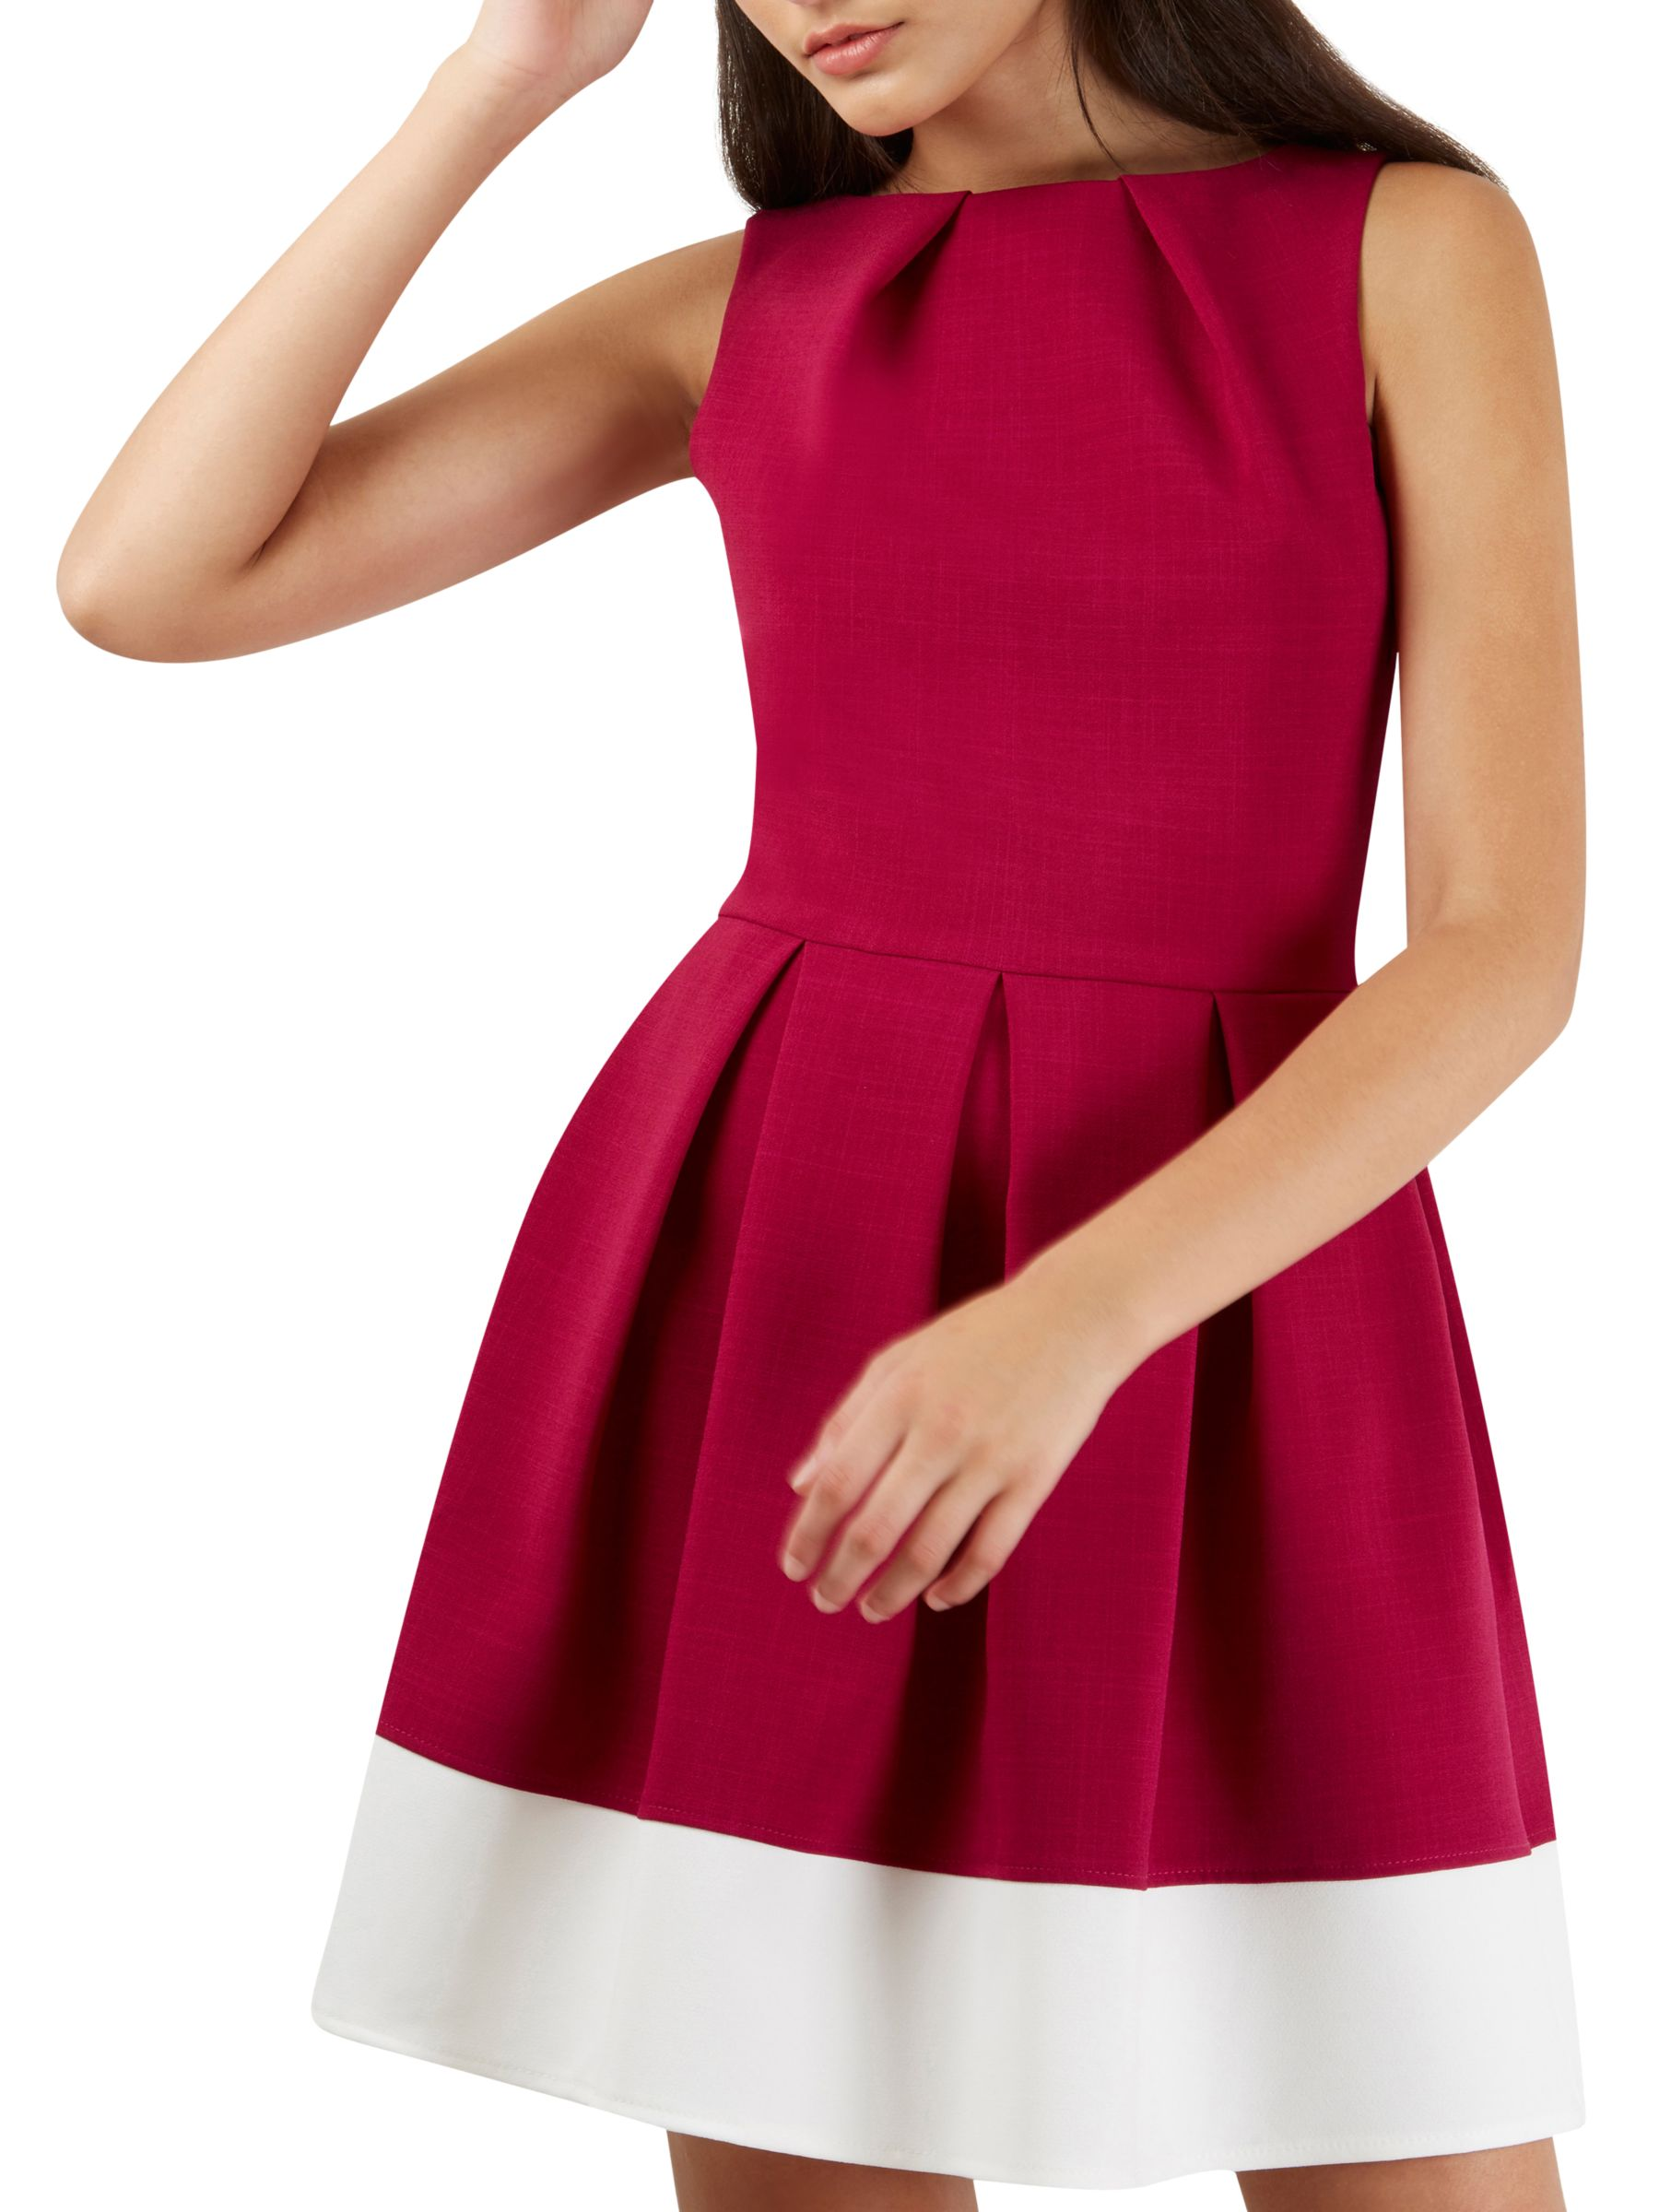 Closet Closet Contrast Border Dress, Magenta